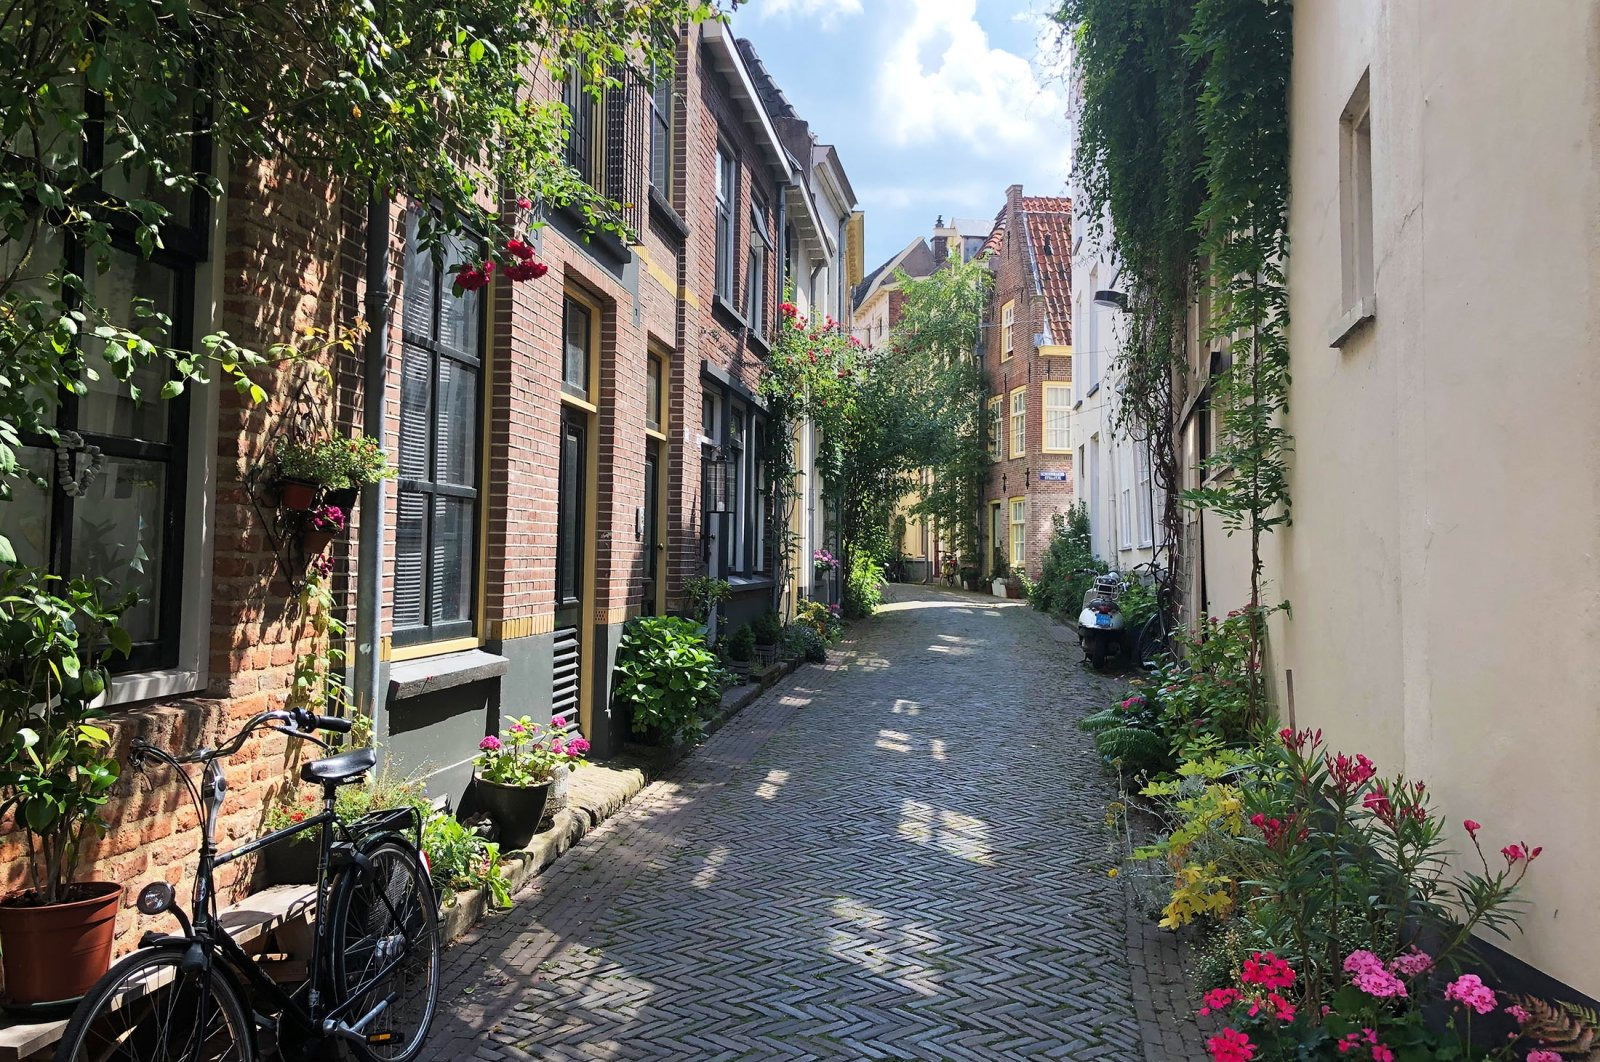 Charming alleys abound in the eastern Dutch city of Zutphen, the Netherlands. (dpa Photo)